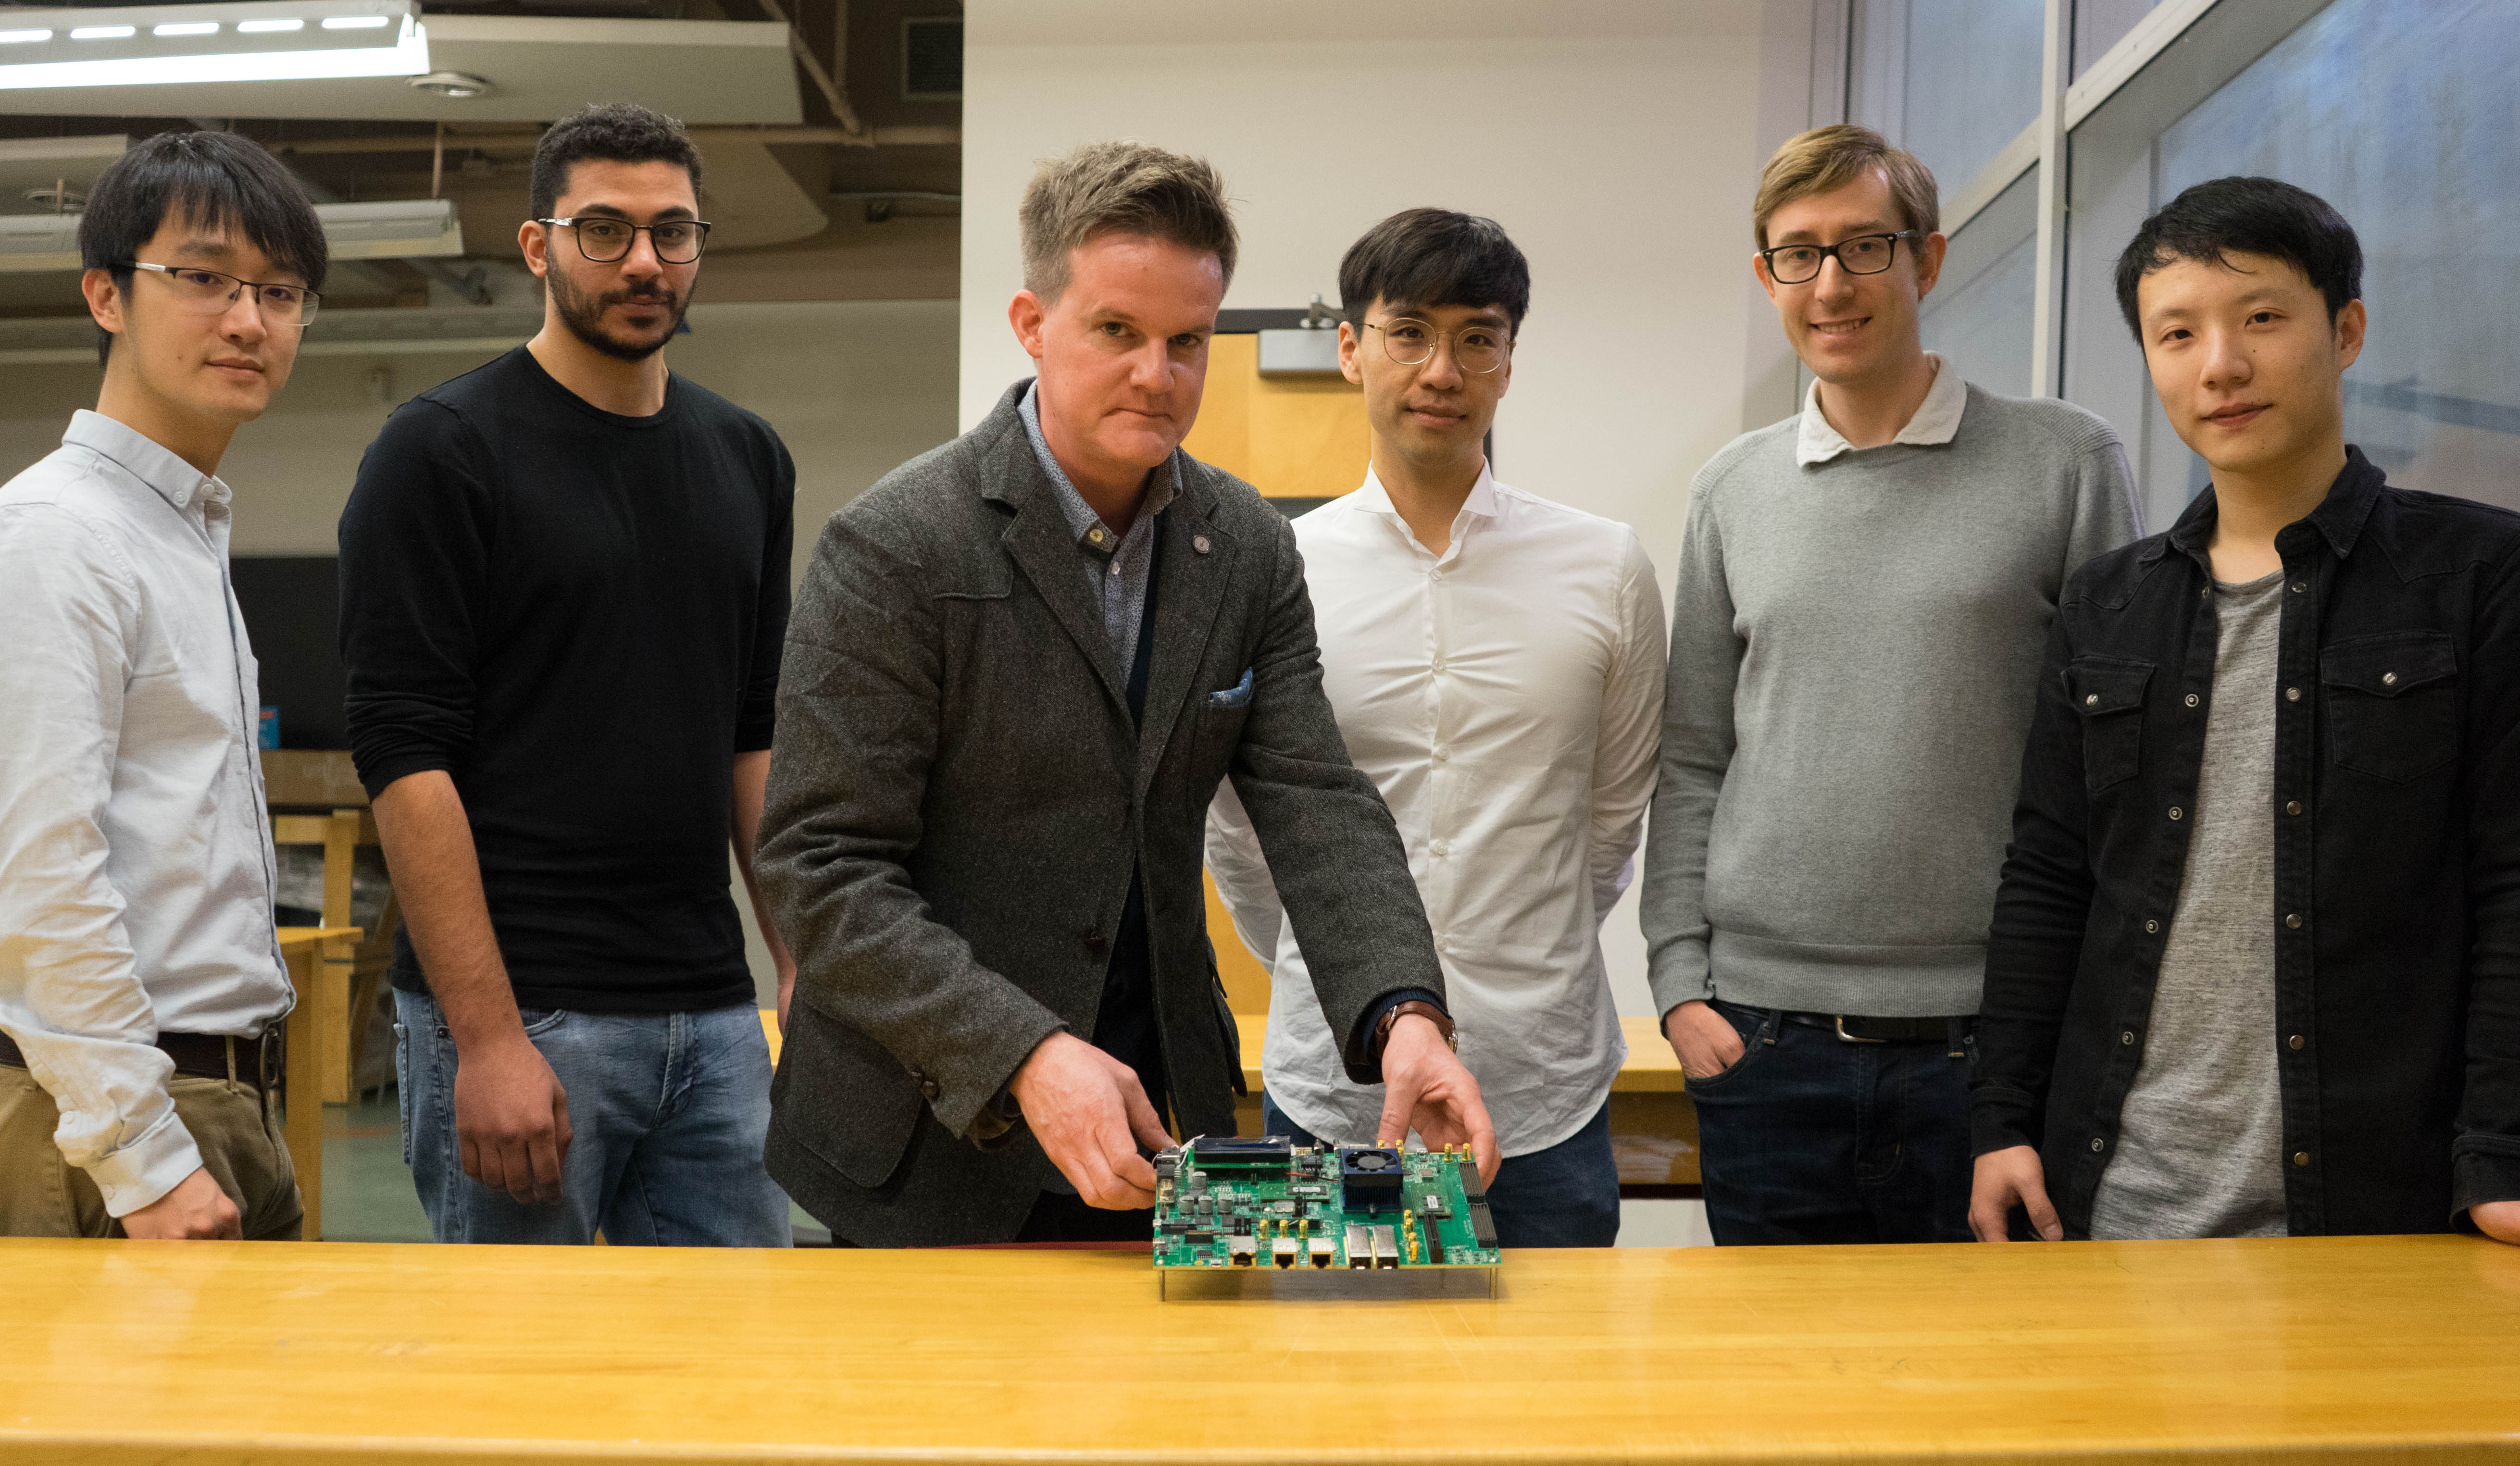 Professor Jason Anderson holds an FPGA board with the LegUp team behind him. Left to right, Zhi Li (CompE 1T3), Omar Ragheb (CompE MEng 1T8), Professor Jason Anderson (ECE), Dr. Jongsok Choi (CompE MASc 1T2, PhD 1T6), Dr. Andrew Canis (CompE PhD 1T5), and Ruolong Lian (CompE 1T3, MASc 1T6) are making it easier for software developers to leverage servers based on FPGAs. (Photo: Jessica MacInnis)